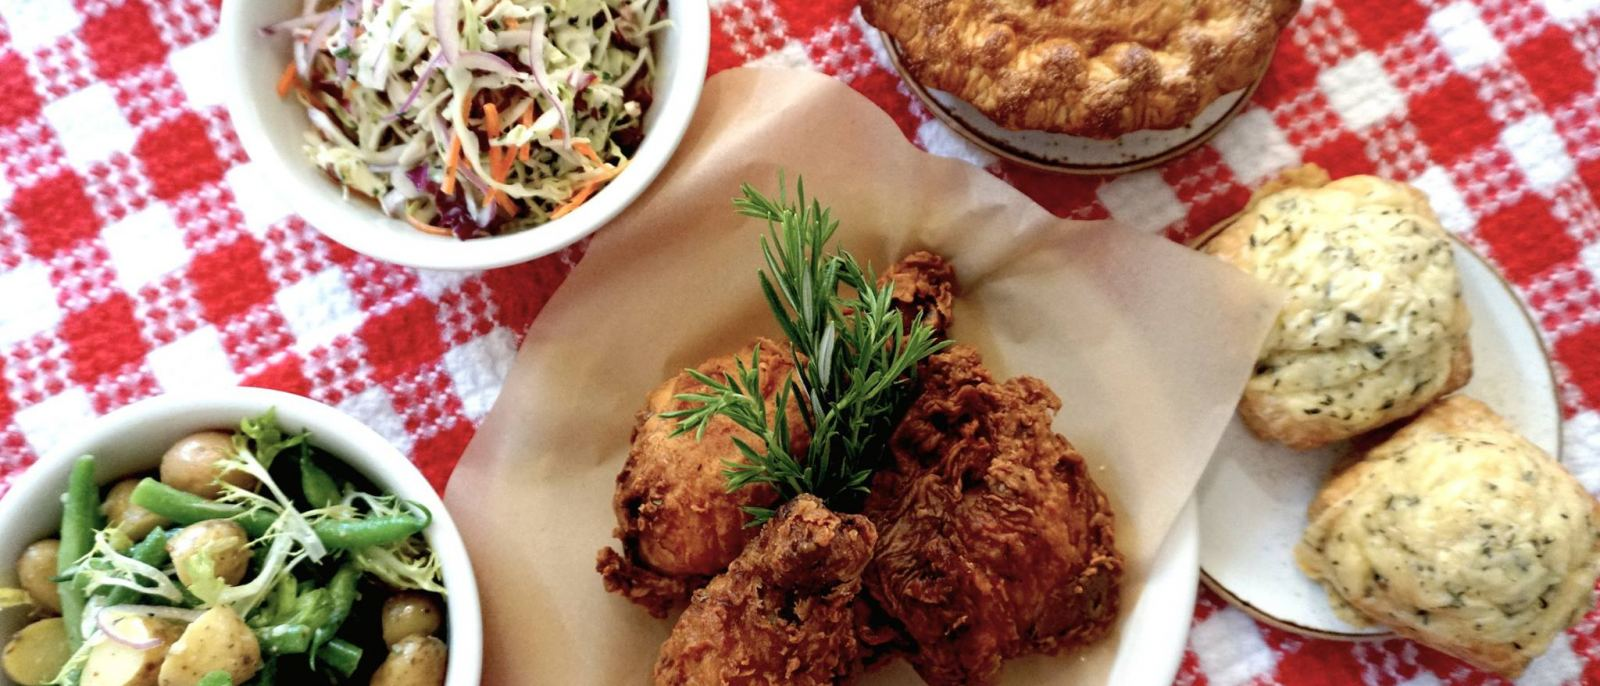 Cold Fried Chicken Picnic Basket at Friends & Family